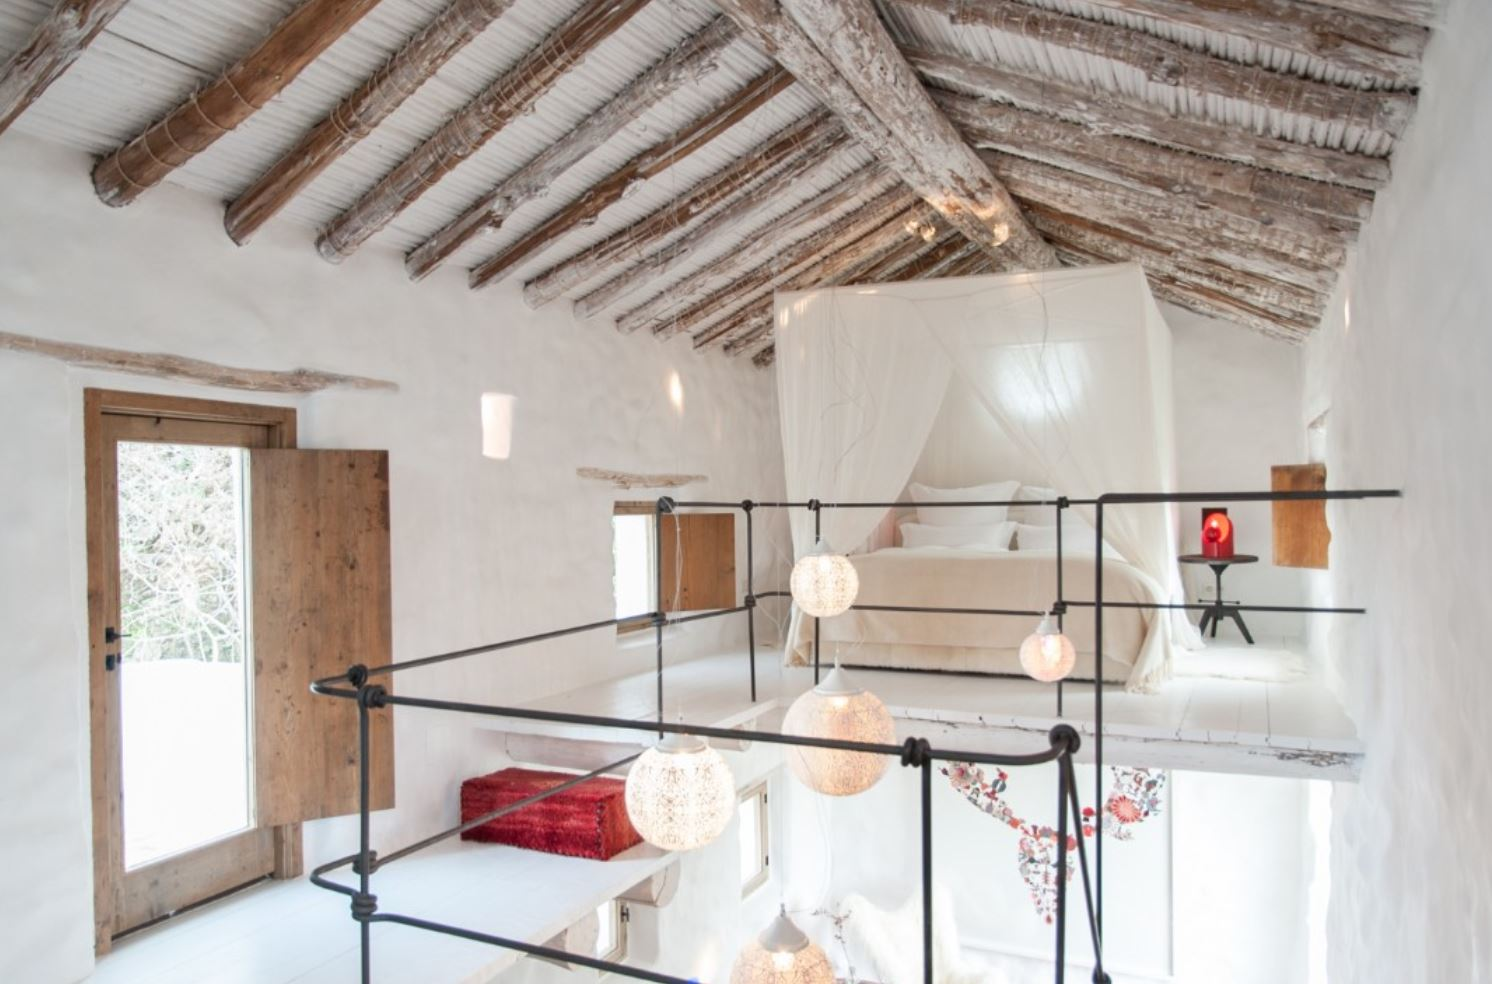 The Laura room, La Donaira (located 1.5hr drive from Seville in Southern Spain)